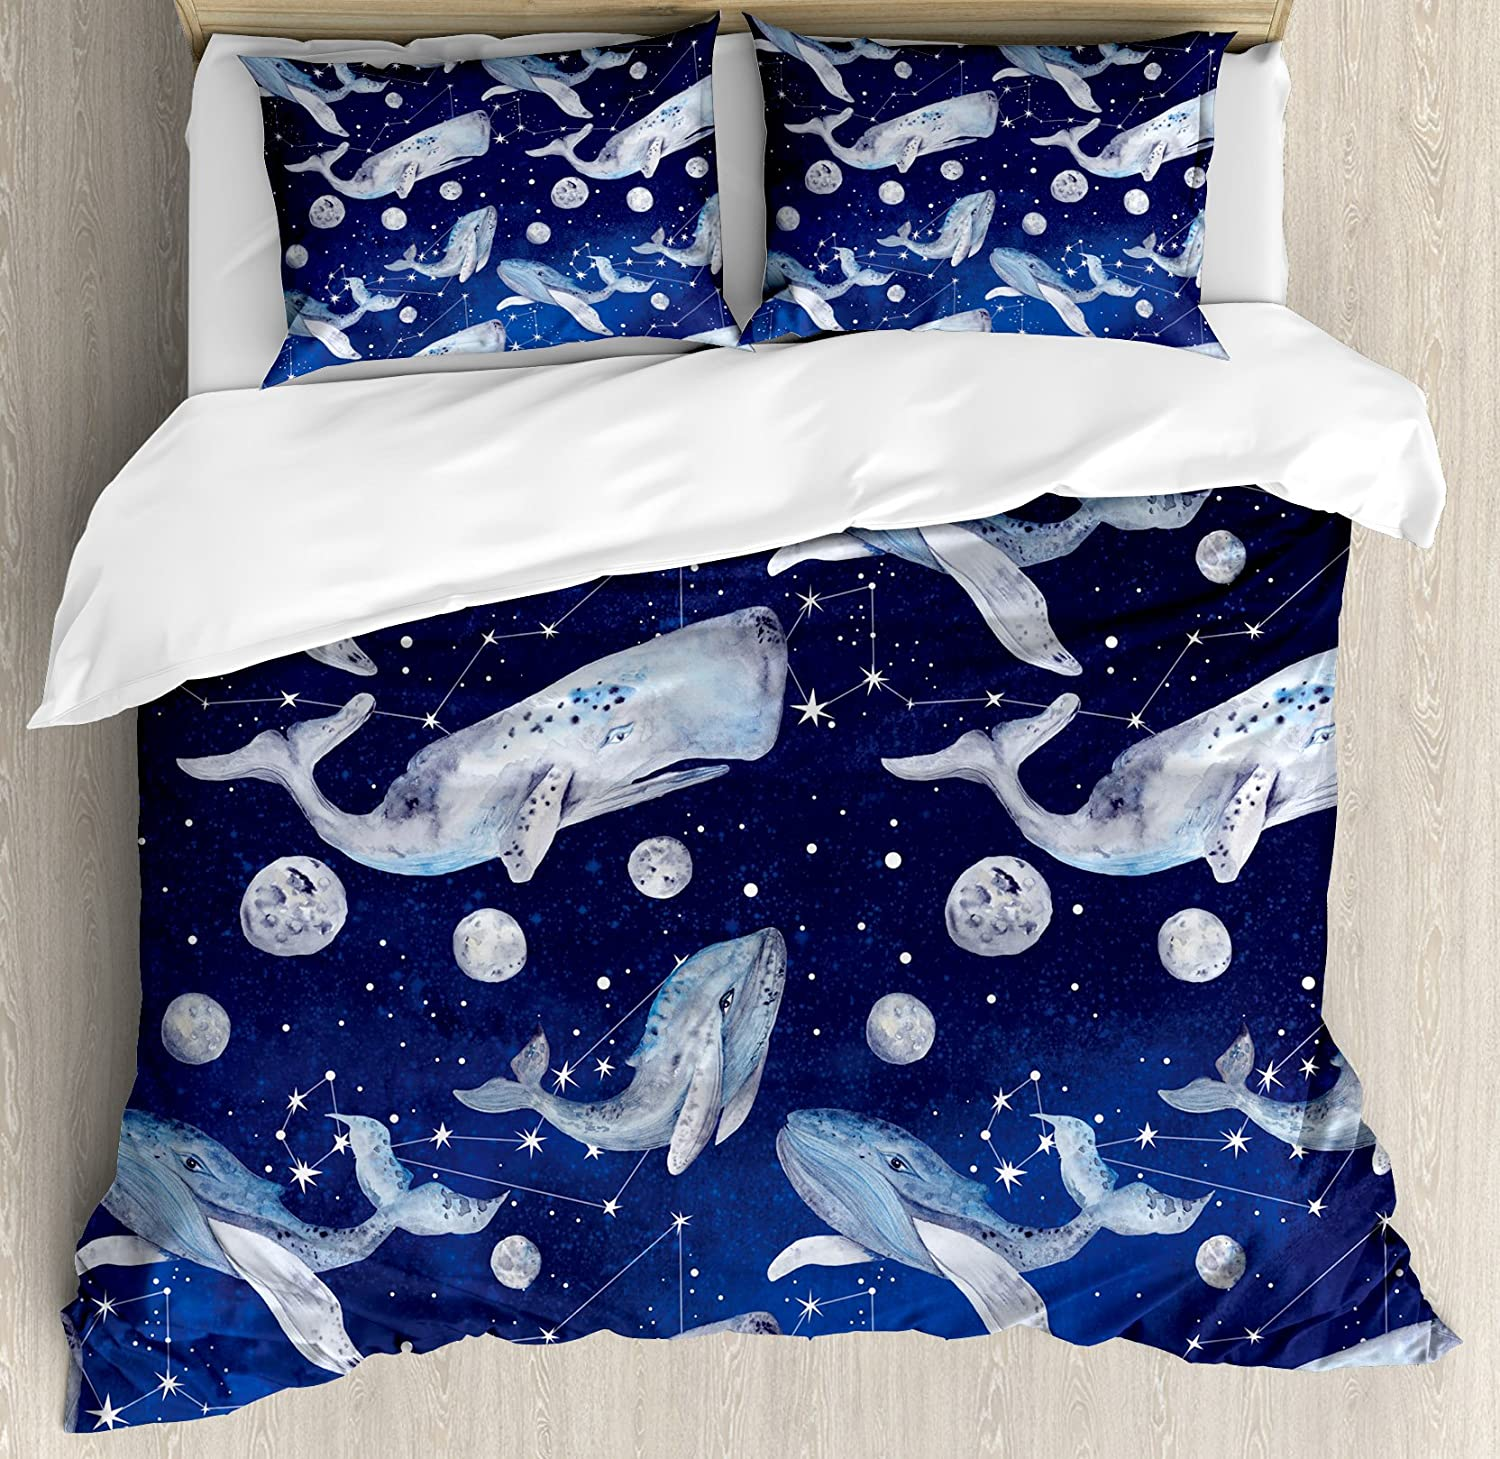 Whale布団カバーセットby Ambesonne、Fishes and Planets Hovering amongst stars in outer space cosmos図、装飾寝具セットwithピロー、ネイビーパープルグレー キング nev_33547_king B075P22JZ3 キング|マルチ1 マルチ1 キング